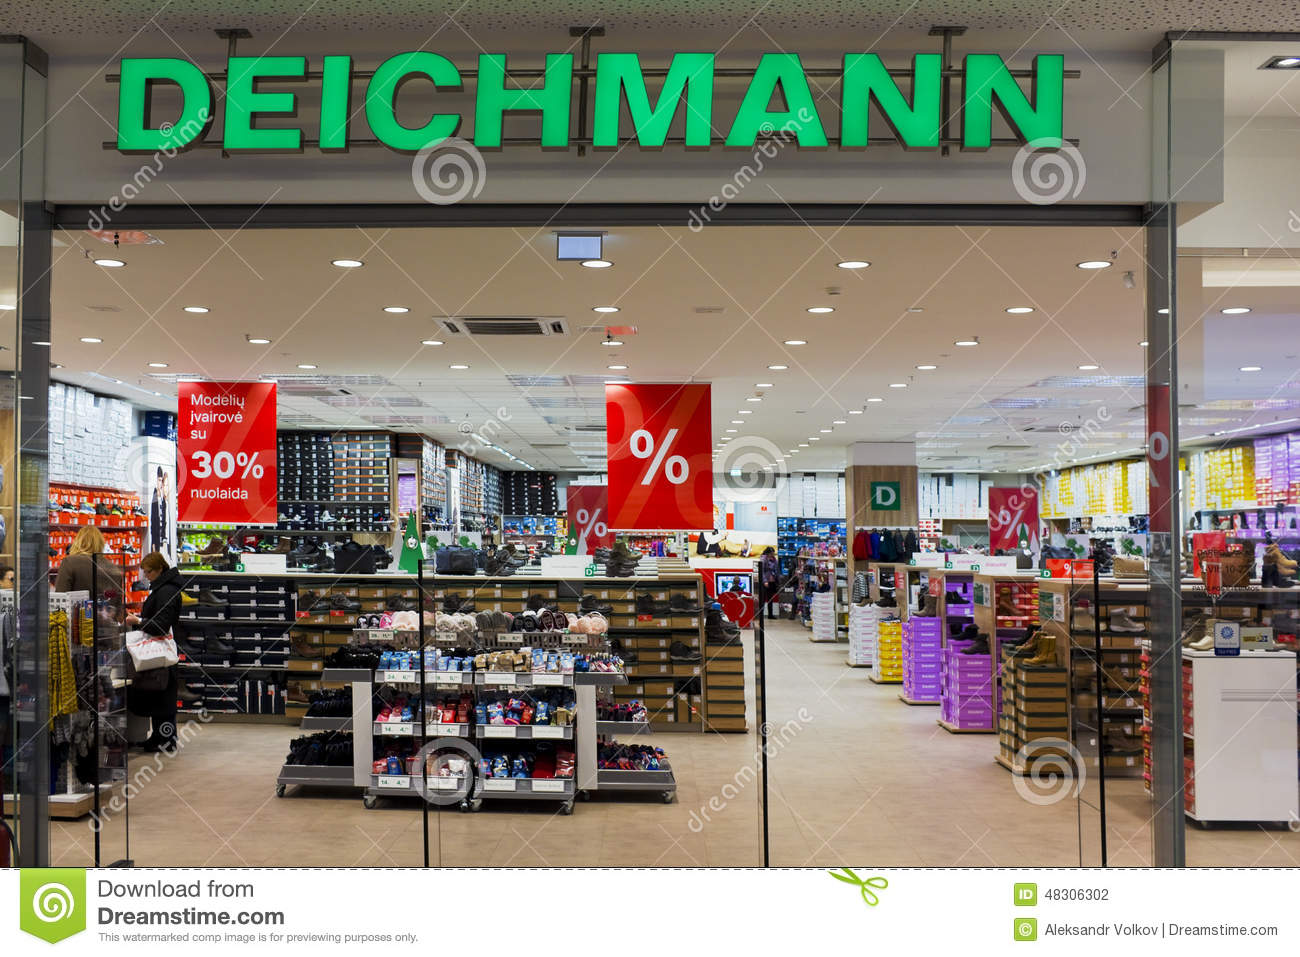 Caroline Blomst for Deichmann | La Sugarlace | Style and Lifestyle